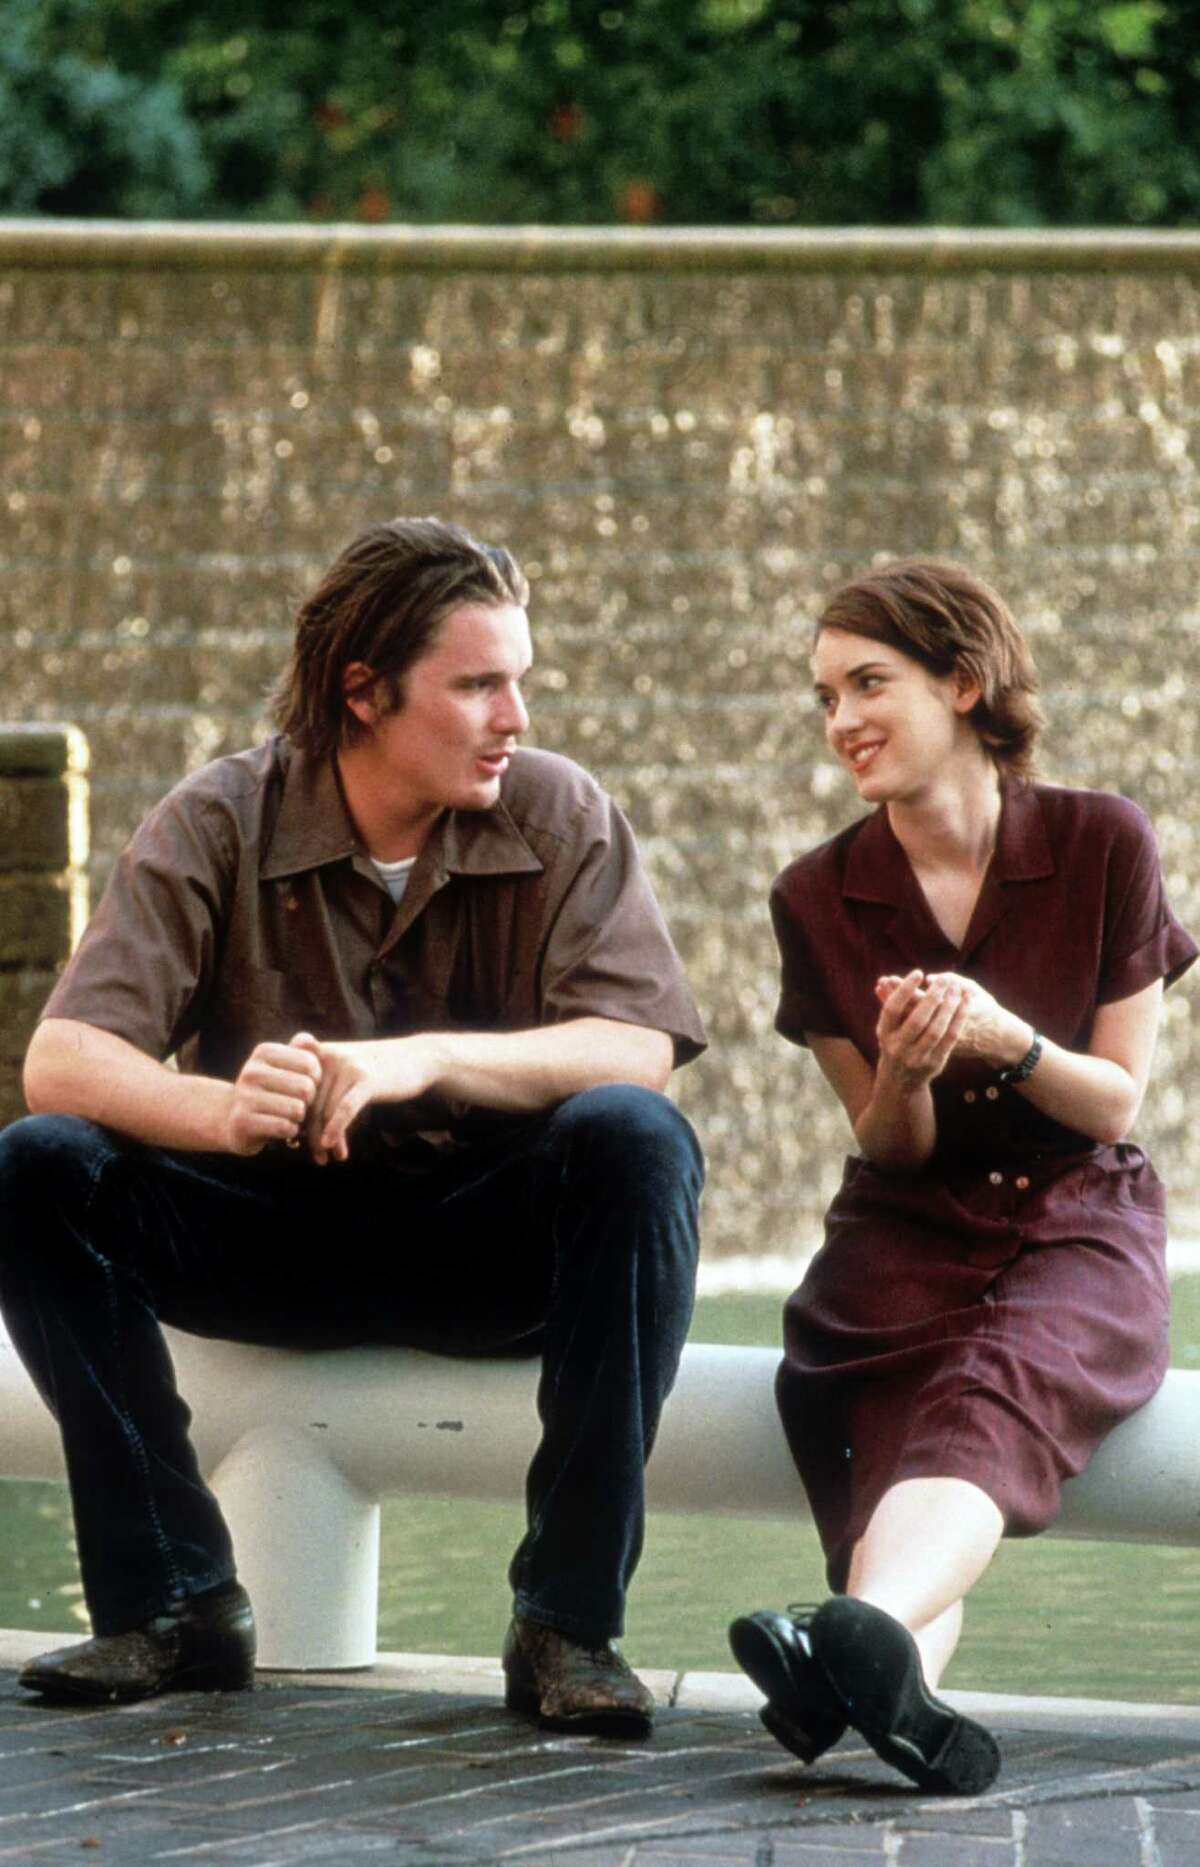 Ethan Hawke starred with Winona Ryder in the successful film 'Reality Bites' in 1994.